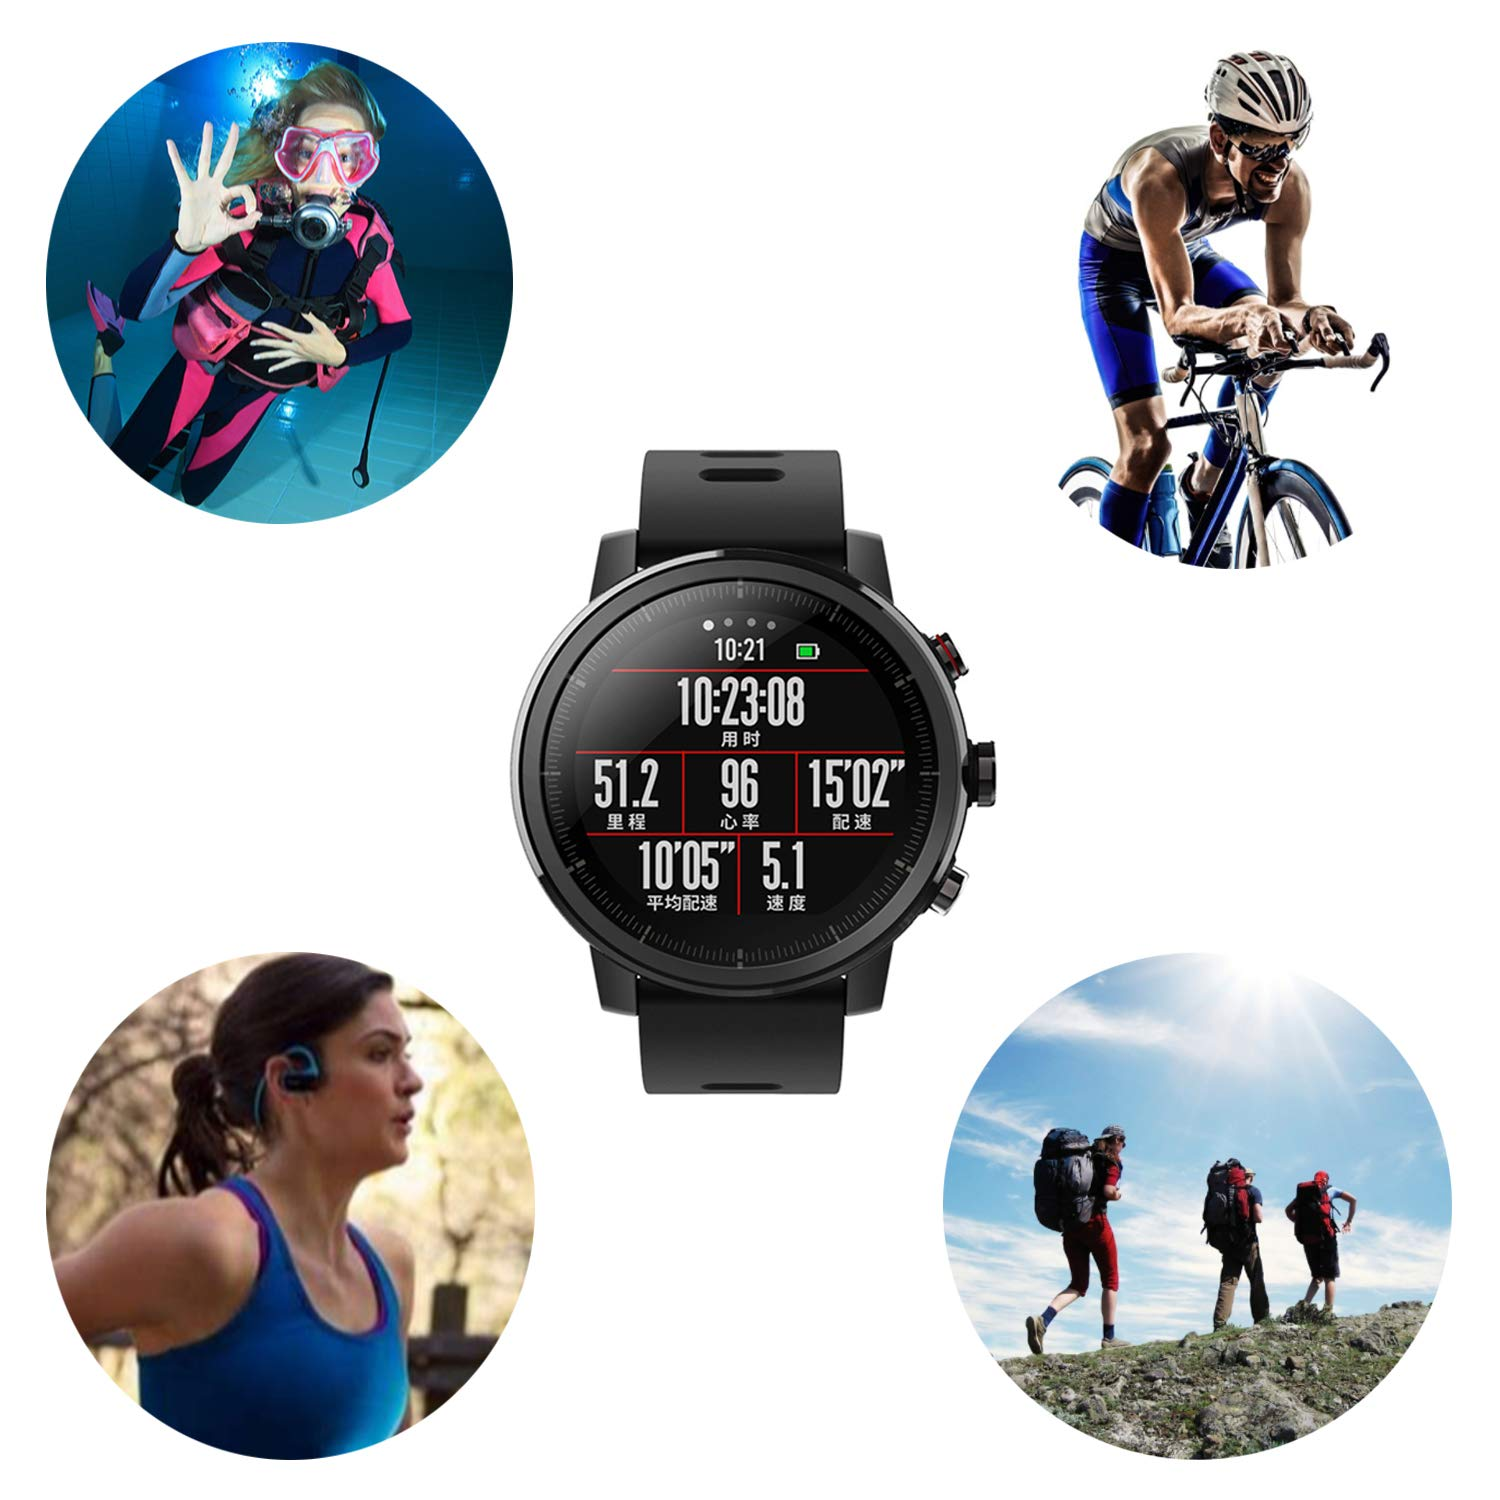 Xiaomi Huami Amazfit Smart Watch Stratos 2 Sports Pace Cover Bumper Case Shell Frame Protector Electronics